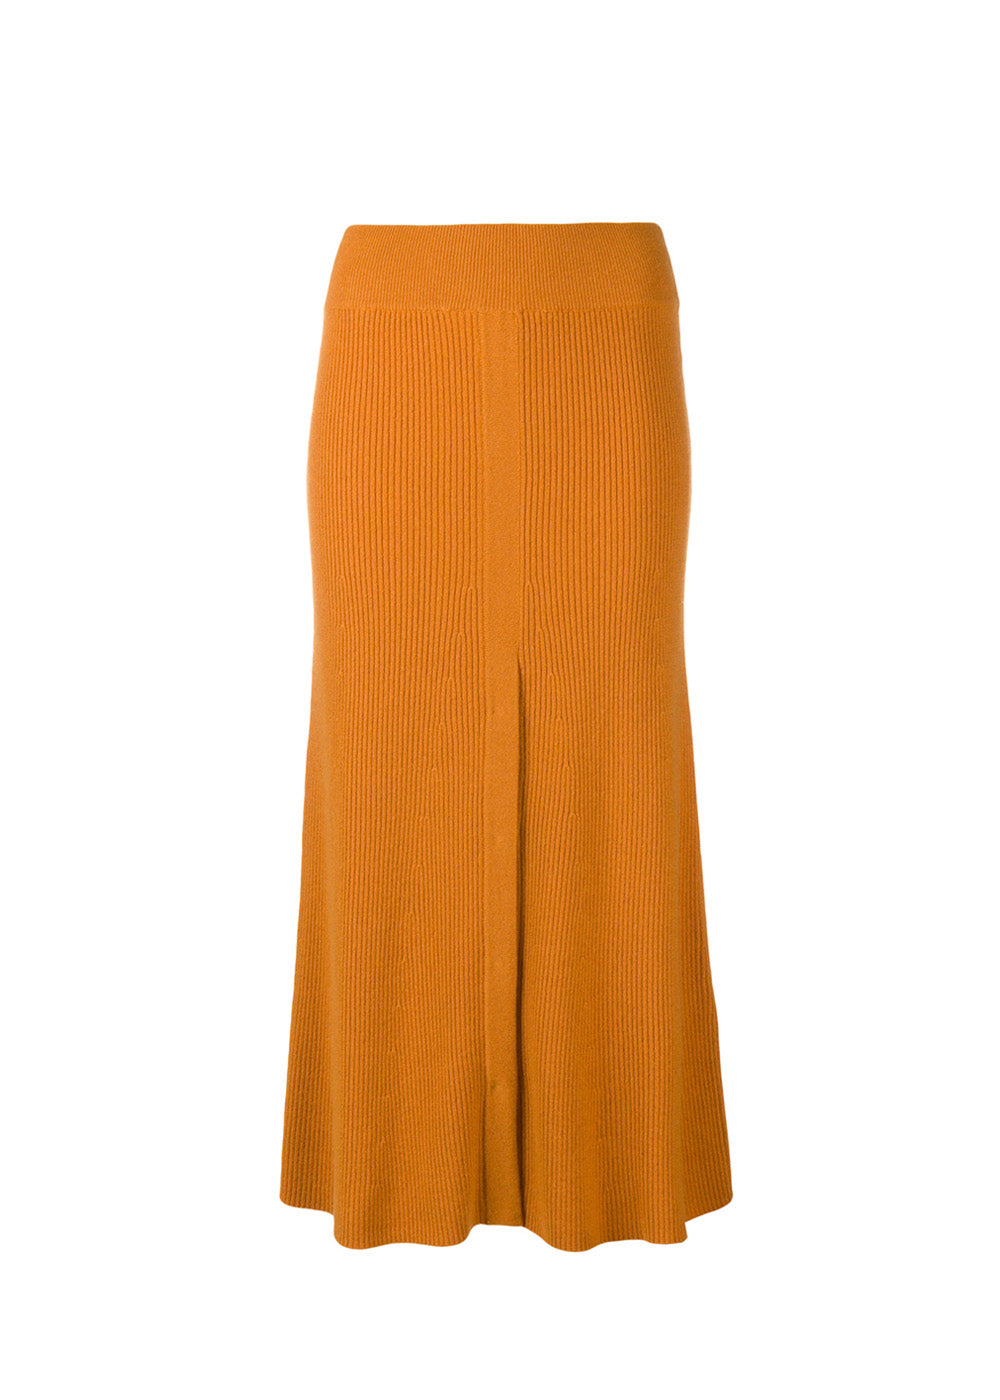 Savannah Midi Skirt